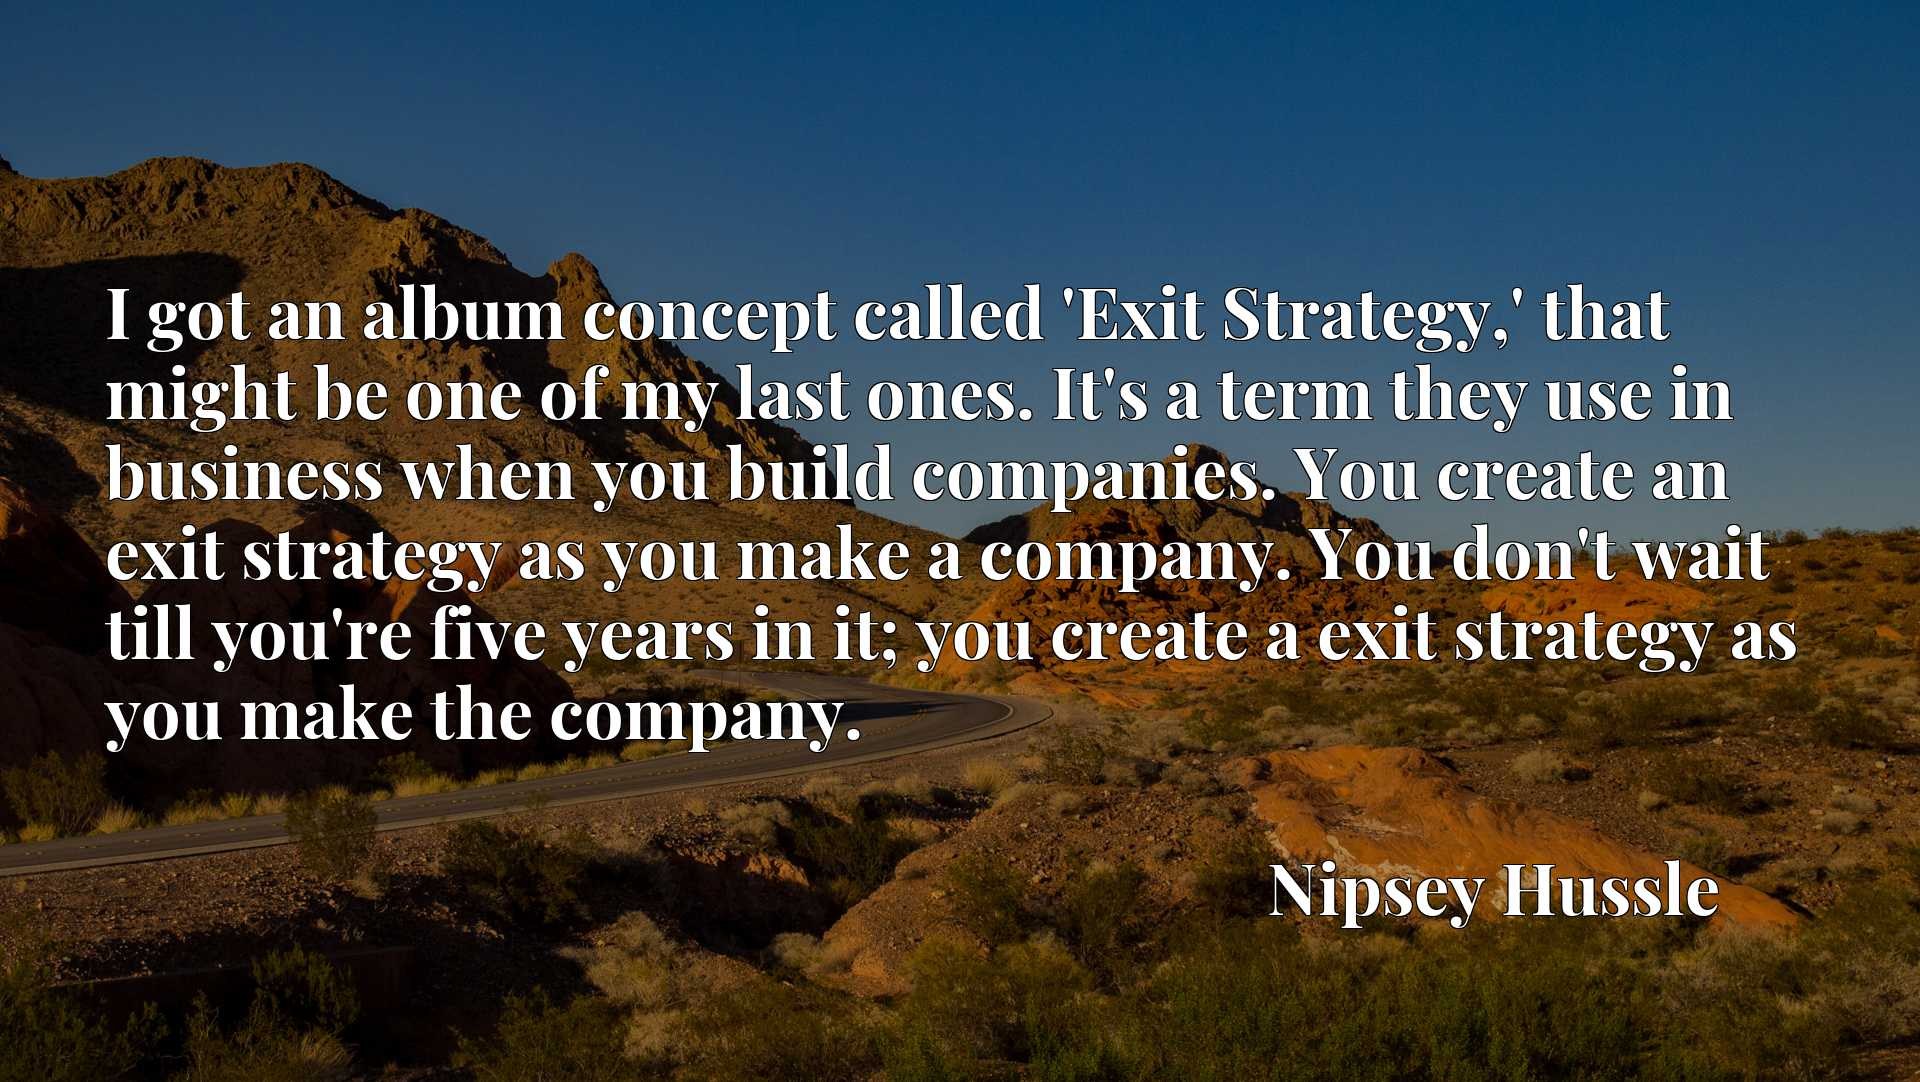 I got an album concept called 'Exit Strategy,' that might be one of my last ones. It's a term they use in business when you build companies. You create an exit strategy as you make a company. You don't wait till you're five years in it; you create a exit strategy as you make the company.